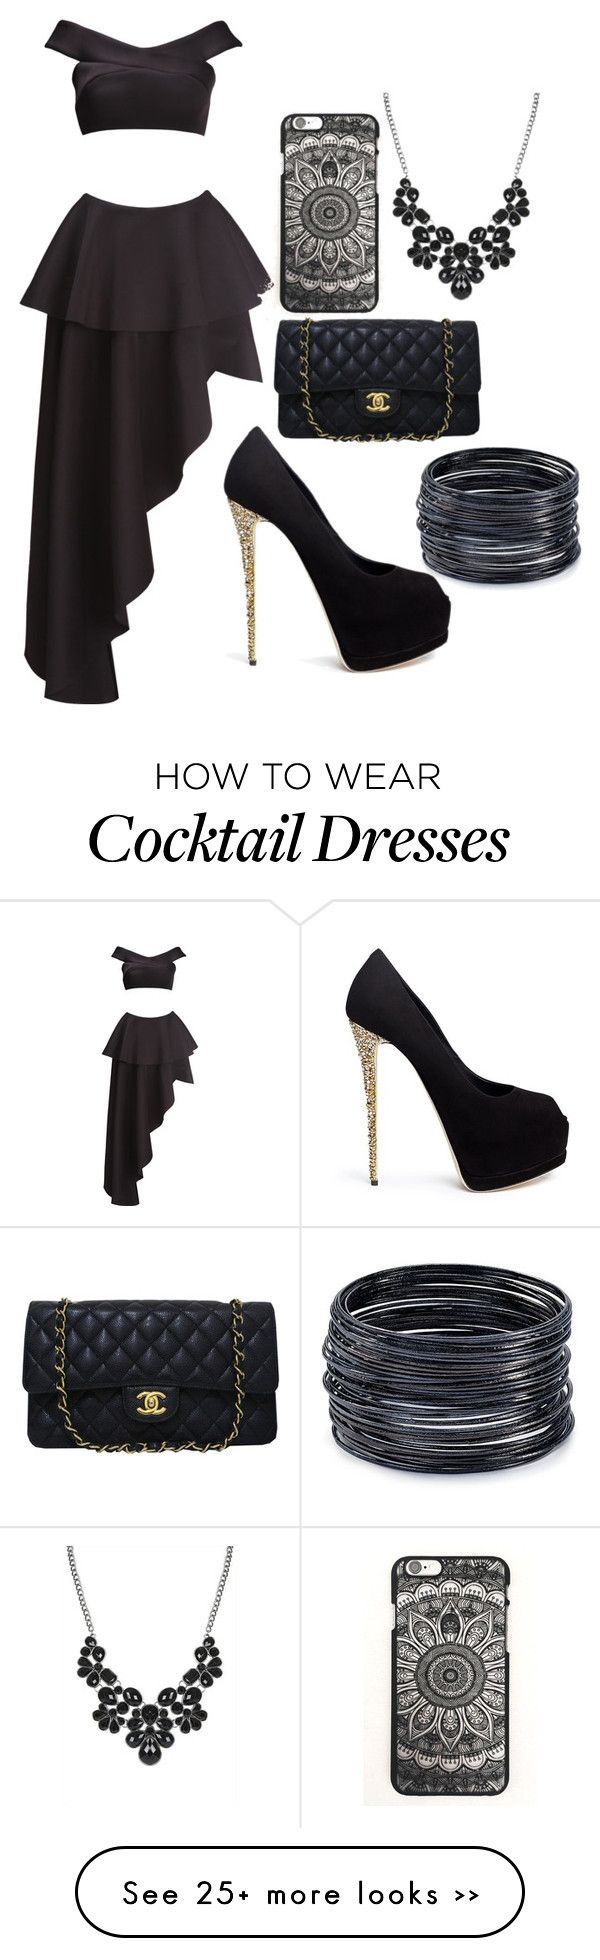 """""""UNTITLED # 118"""" by arianagrande1230 on Polyvore featuring Fame & Partners, Giuseppe Zanotti, Chanel and ABS by Allen Schwartz"""